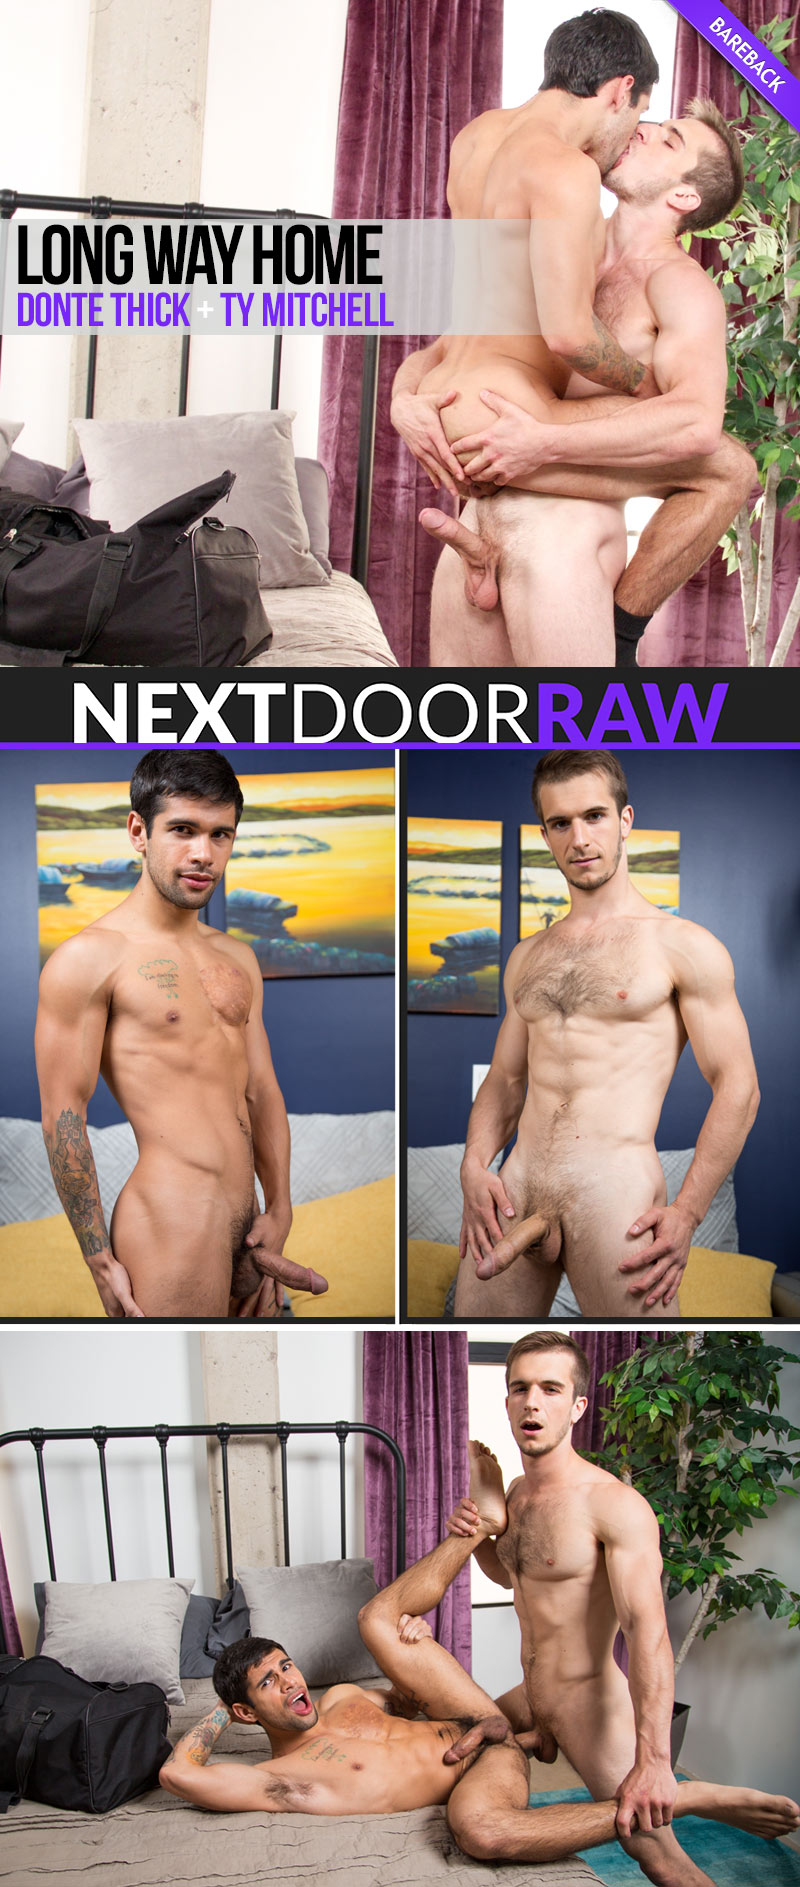 Long Way Home (Donte Thick Fucks Ty Mitchell) at NextDoorRAW!